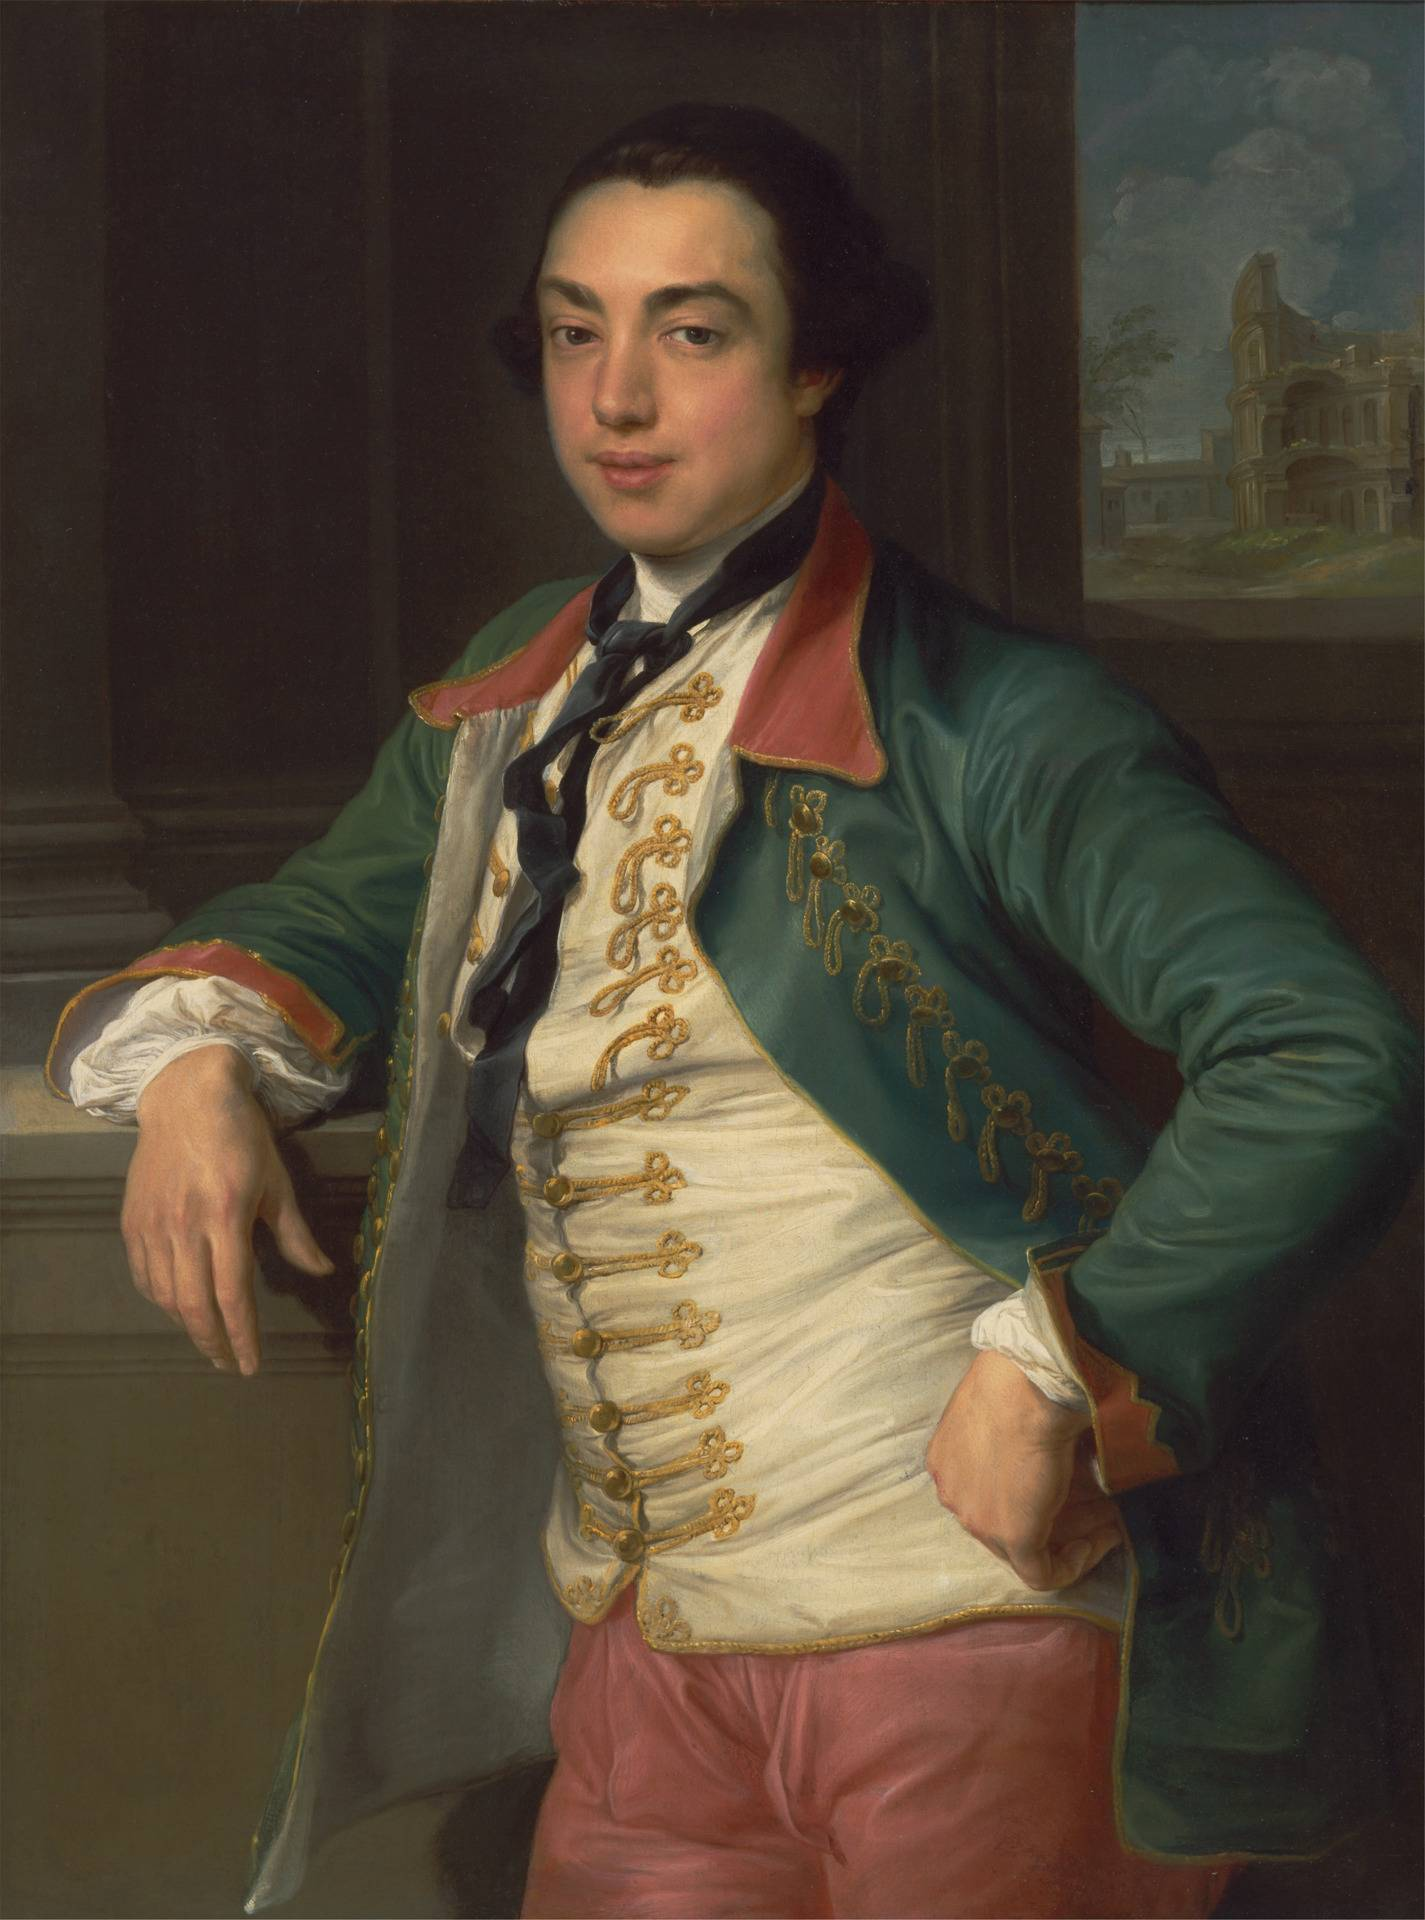 James Caulfeild, fourth Viscount Charlemont (Later first Earl of Charlemont) by Pompeo Batoni (1708–1787). Oil on canvas. Dated between 1753 and 1756. Yale Center for British Art, Paul Mellon Collection.